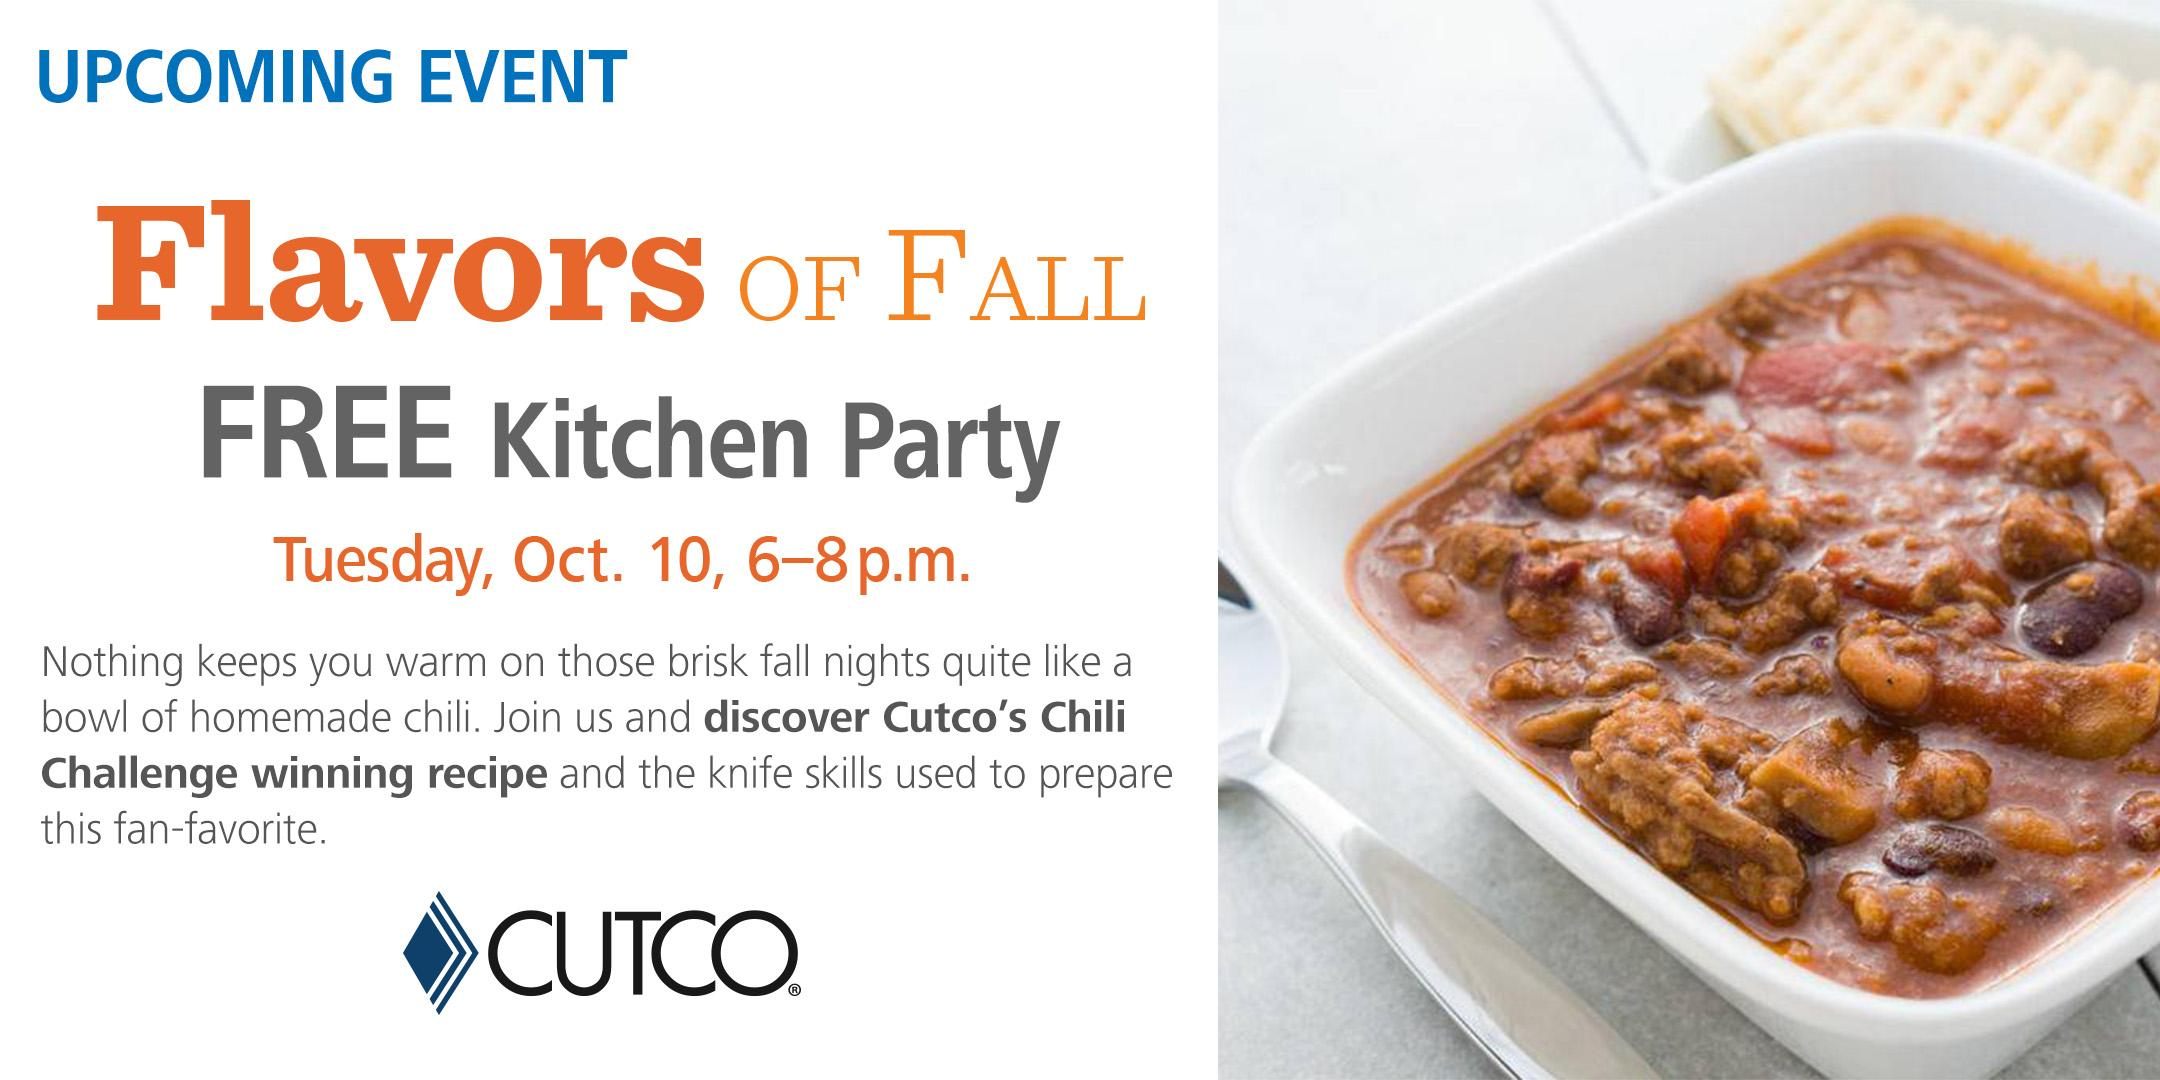 flavors of fall kitchen party free cooking class cutco kitchen